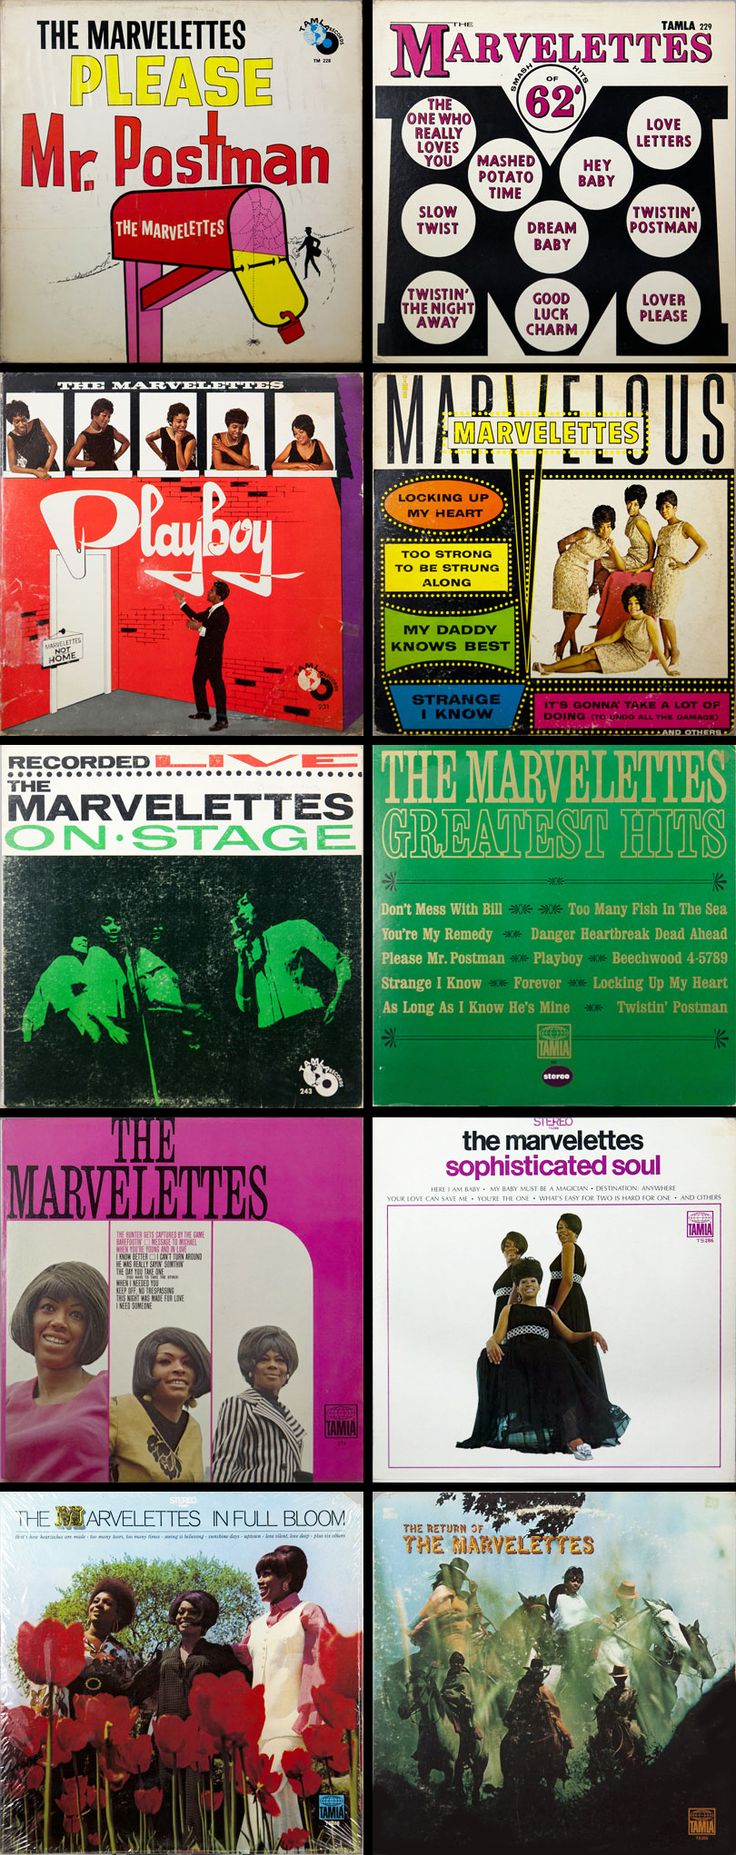 The Marvelettes released 10 albums during their career with Motown. — Please Mr. Postman (1961) • The Marvelettes Sing Smash Hits of '62 (1962) • Playboy (1962)• The Marvelous Marvelettes (1963) • Recorded Live on Stage (1963) • Greatest Hits (1966) • The Marvelettes (1967) • Sophisticated Soul (1968) • In Full Bloom (1969) • The Return of The Marvelettes (1970)